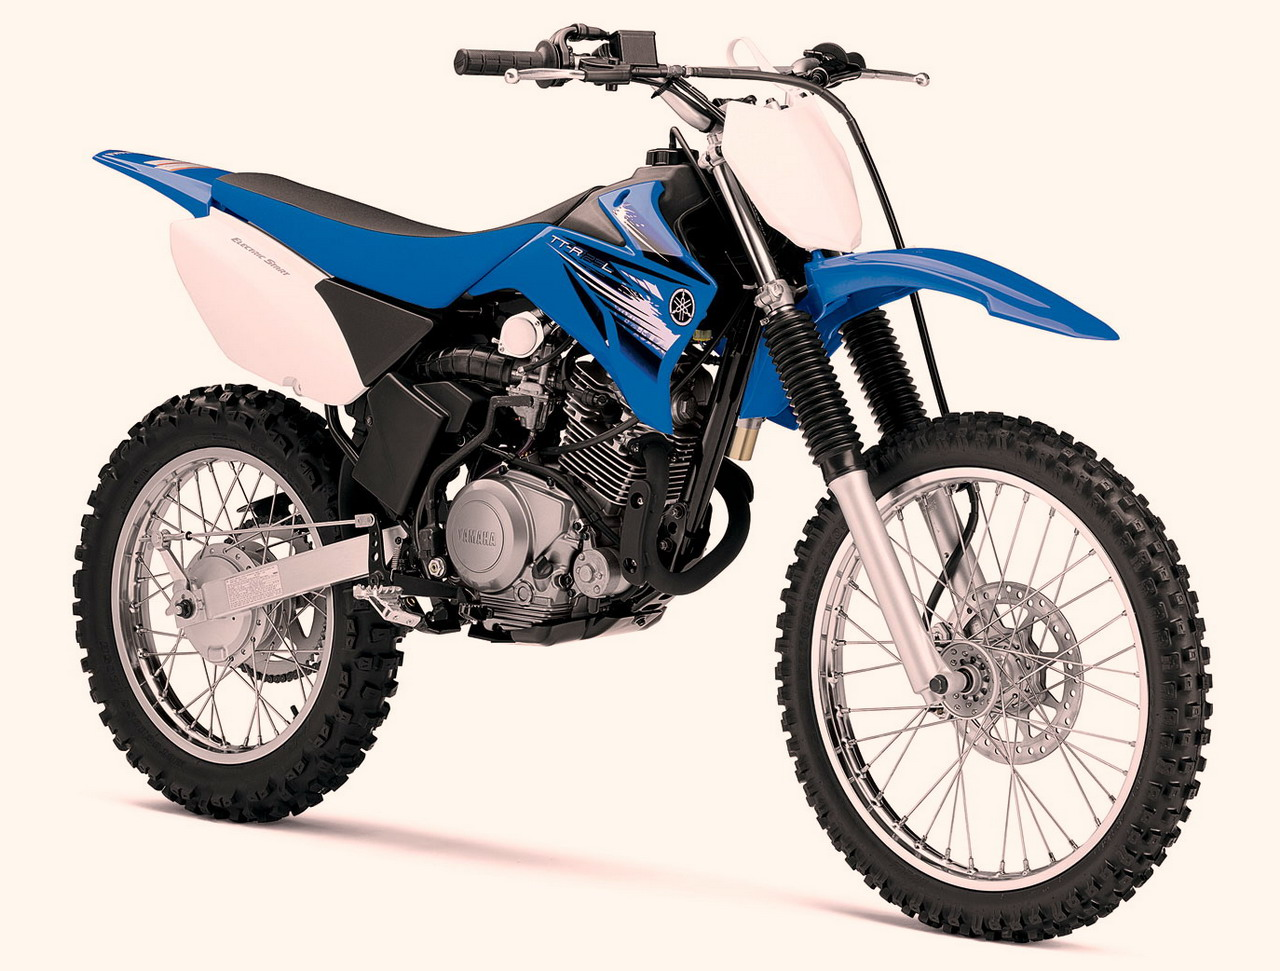 2012 yamaha tt r125le motorcycle picture wallpaper for Yamaha ttr 125 top speed